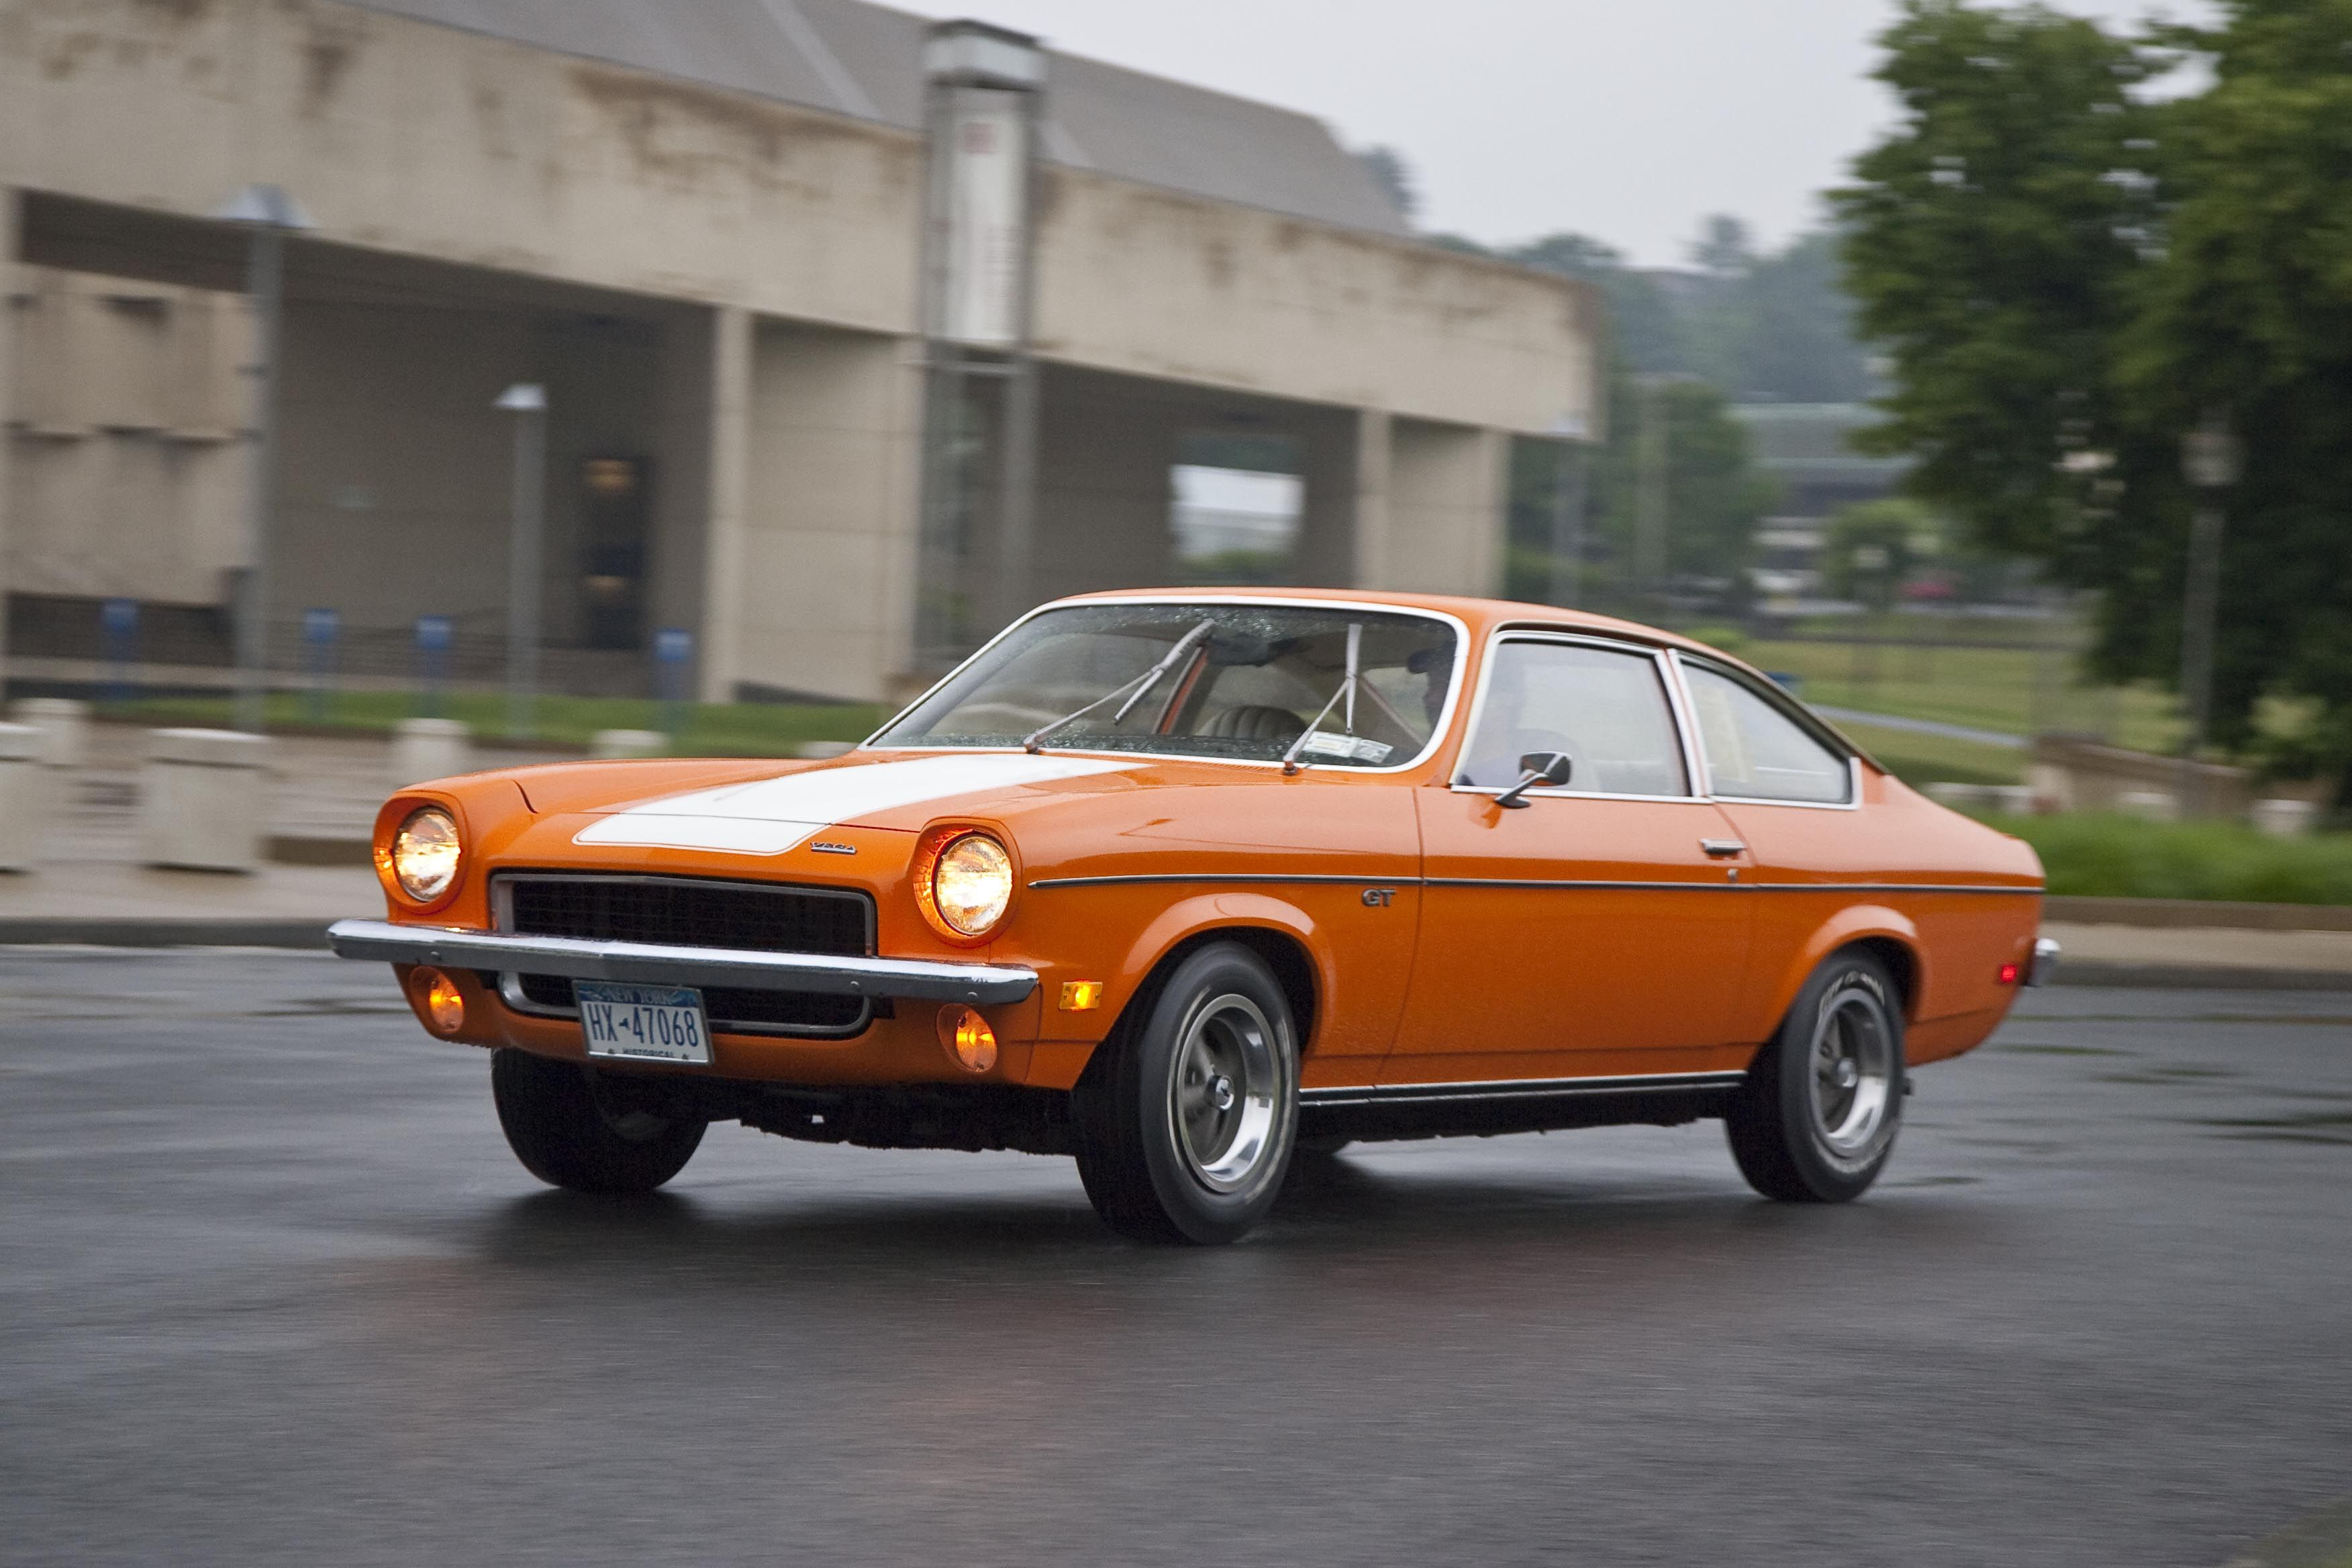 1973 Chevrolet Vega 73GT Long Island, NY owned by